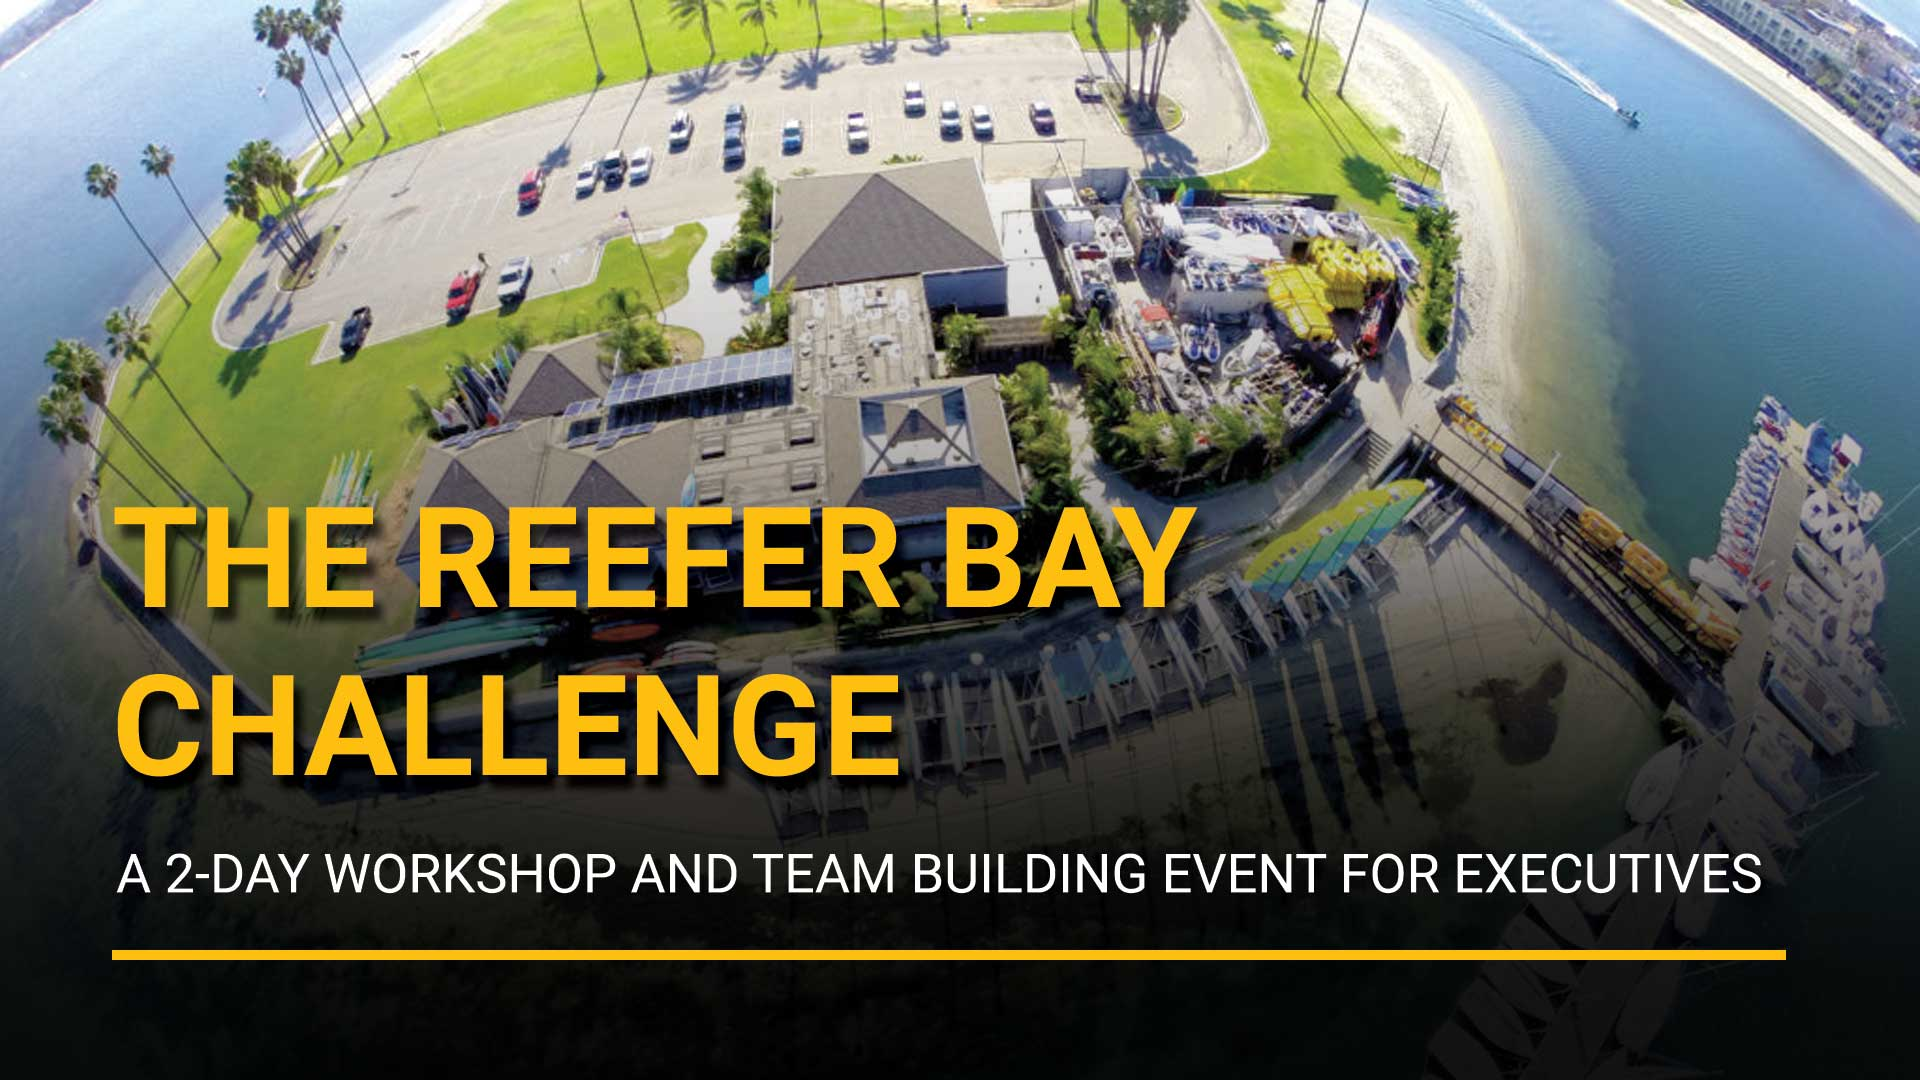 The Reefer Bay Challenge